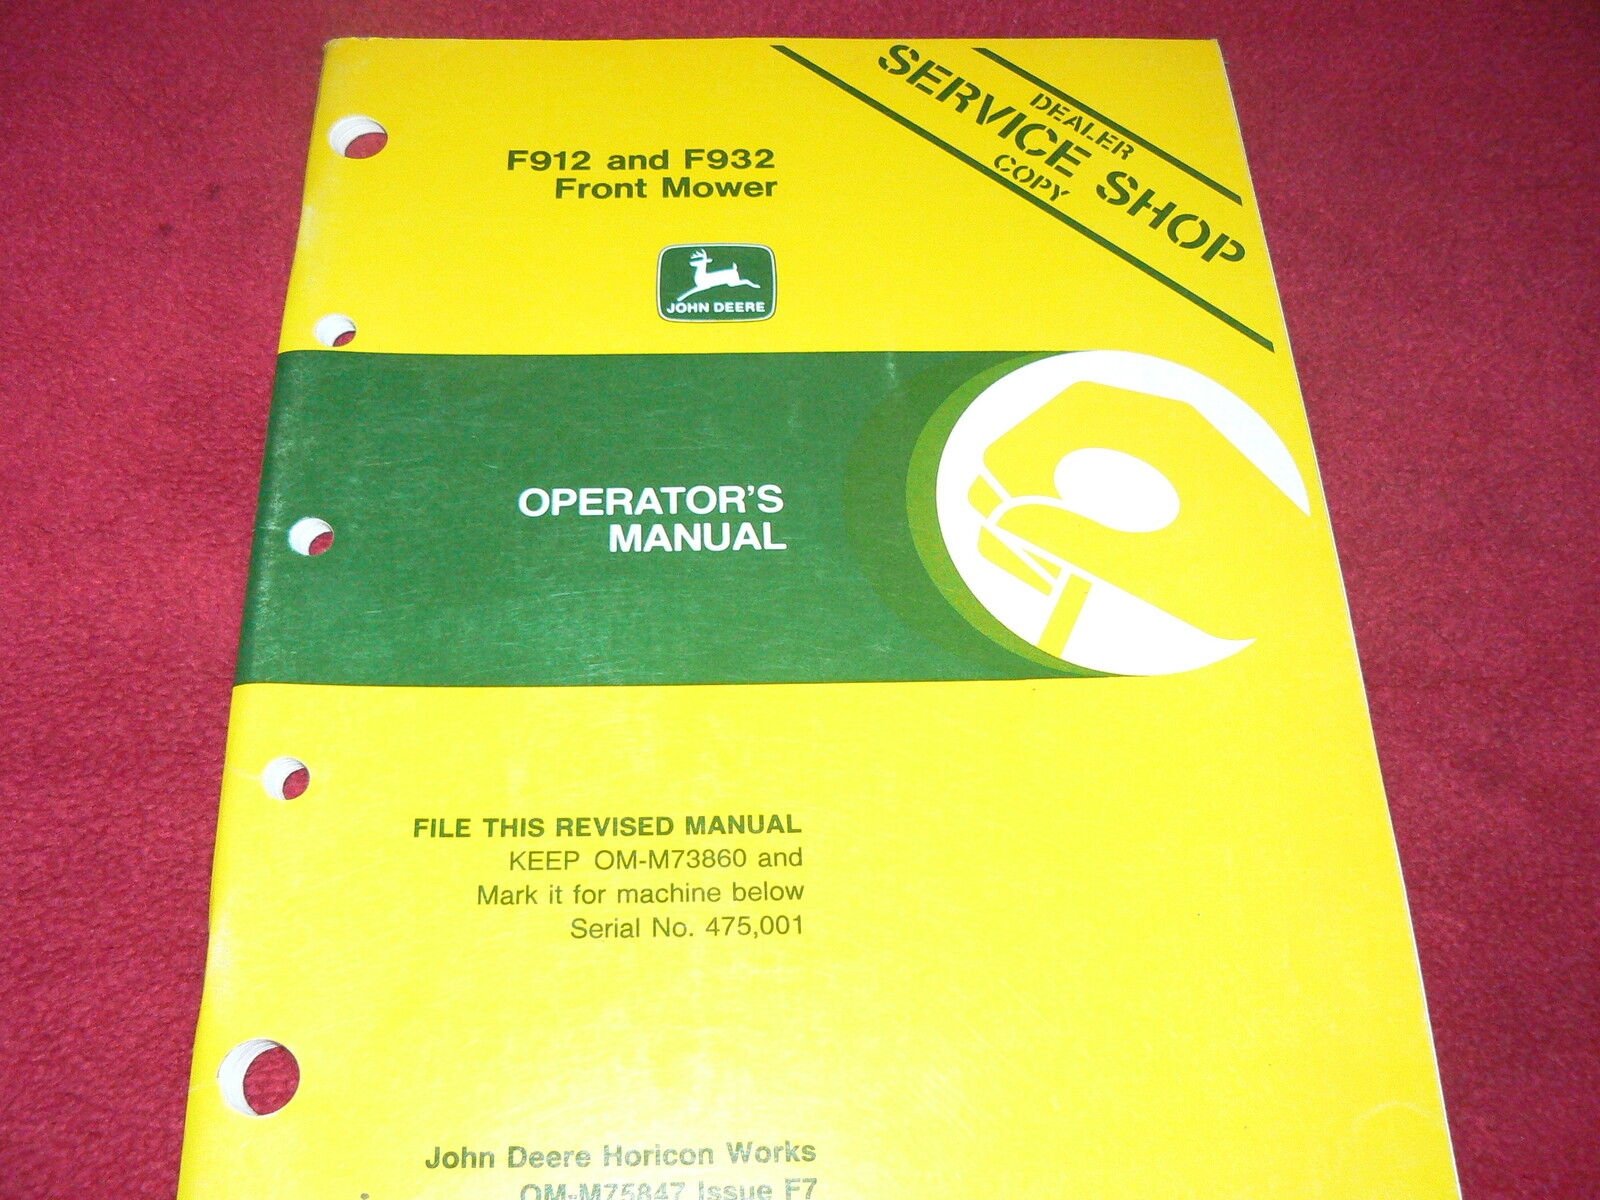 John Deere F912 and F932 Front Mower Operator's Manual 1 of 1Only 2  available ...